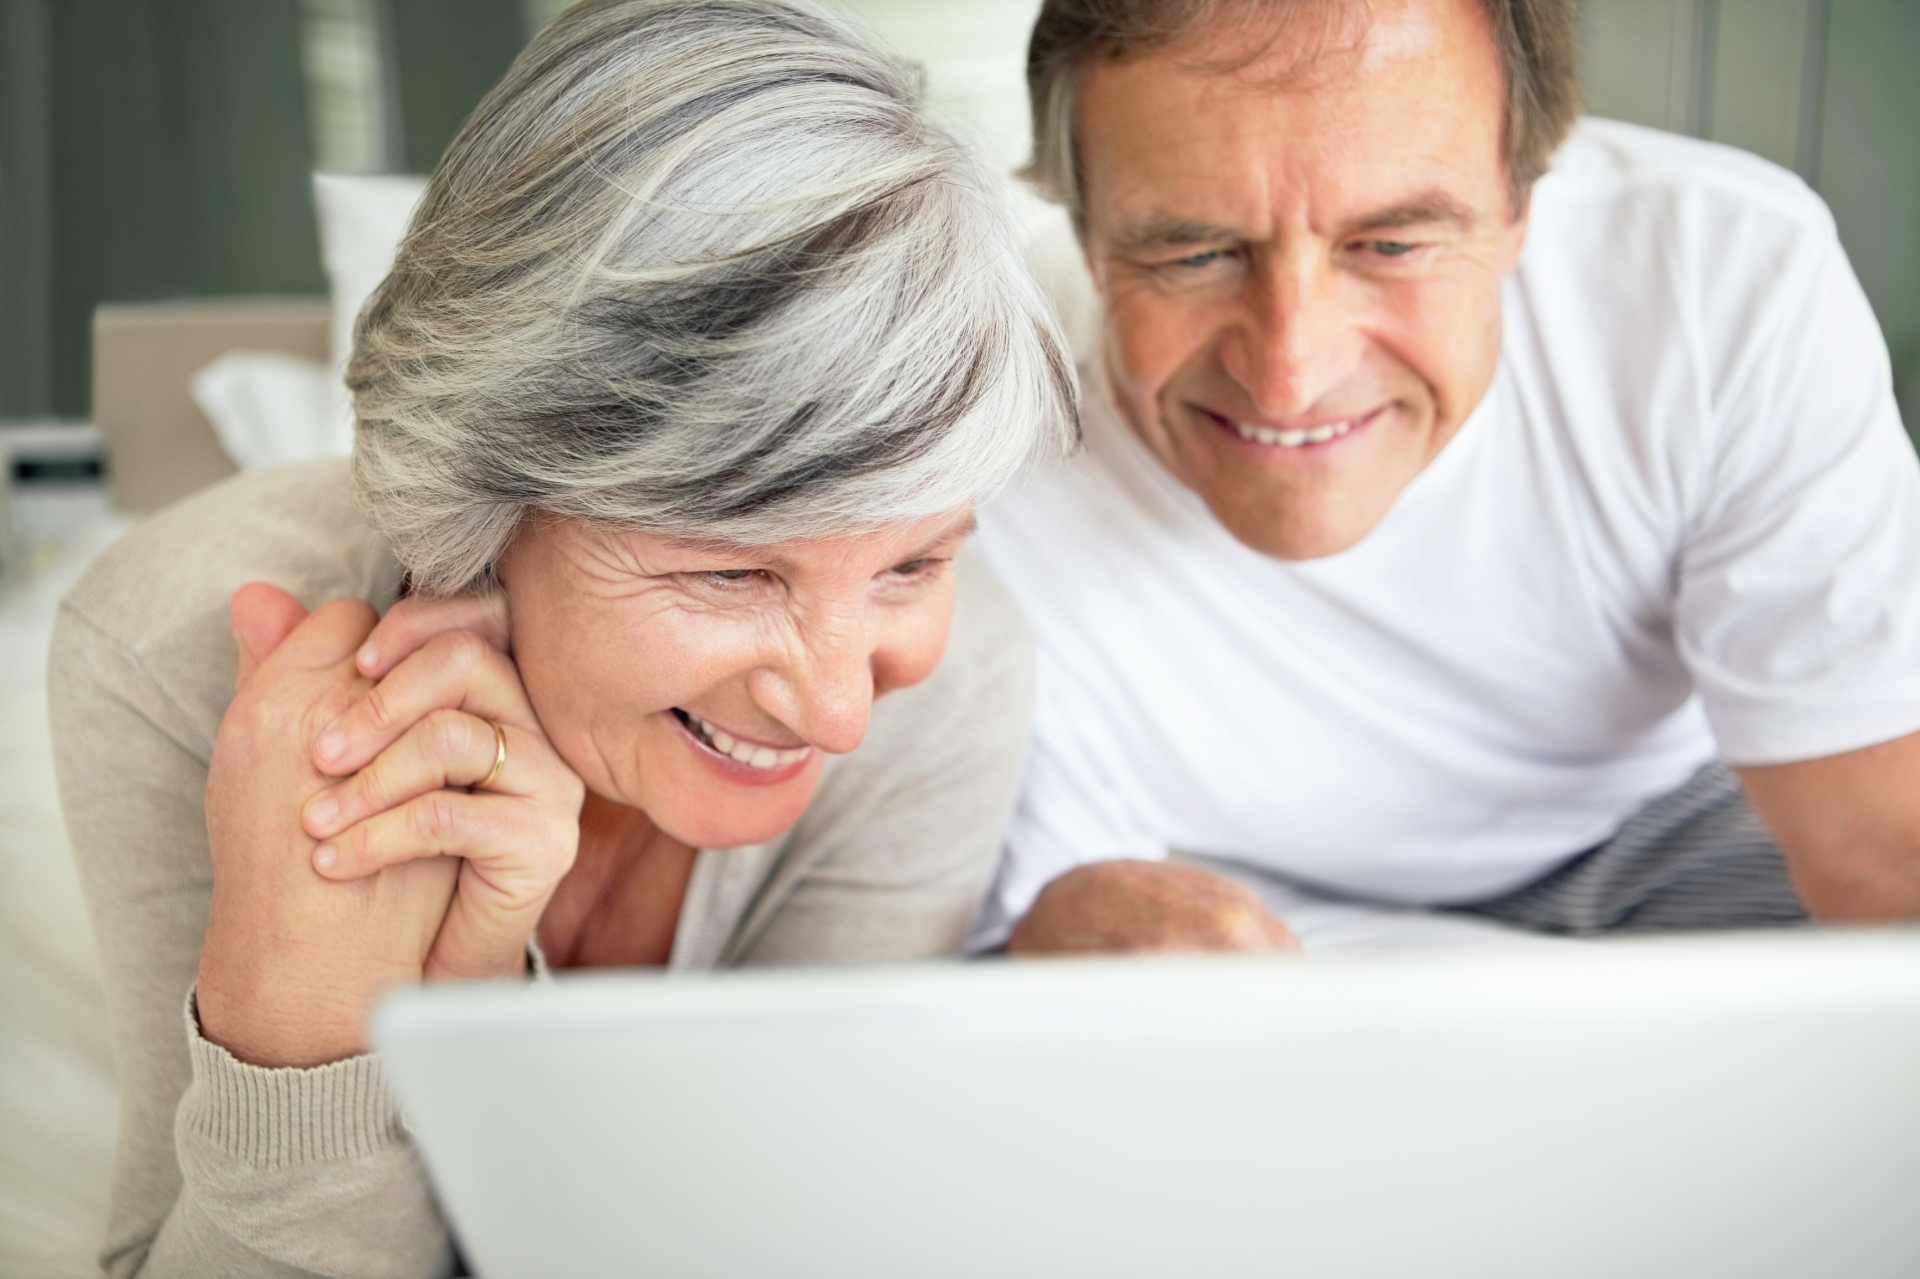 Smiling couple looking at computer.